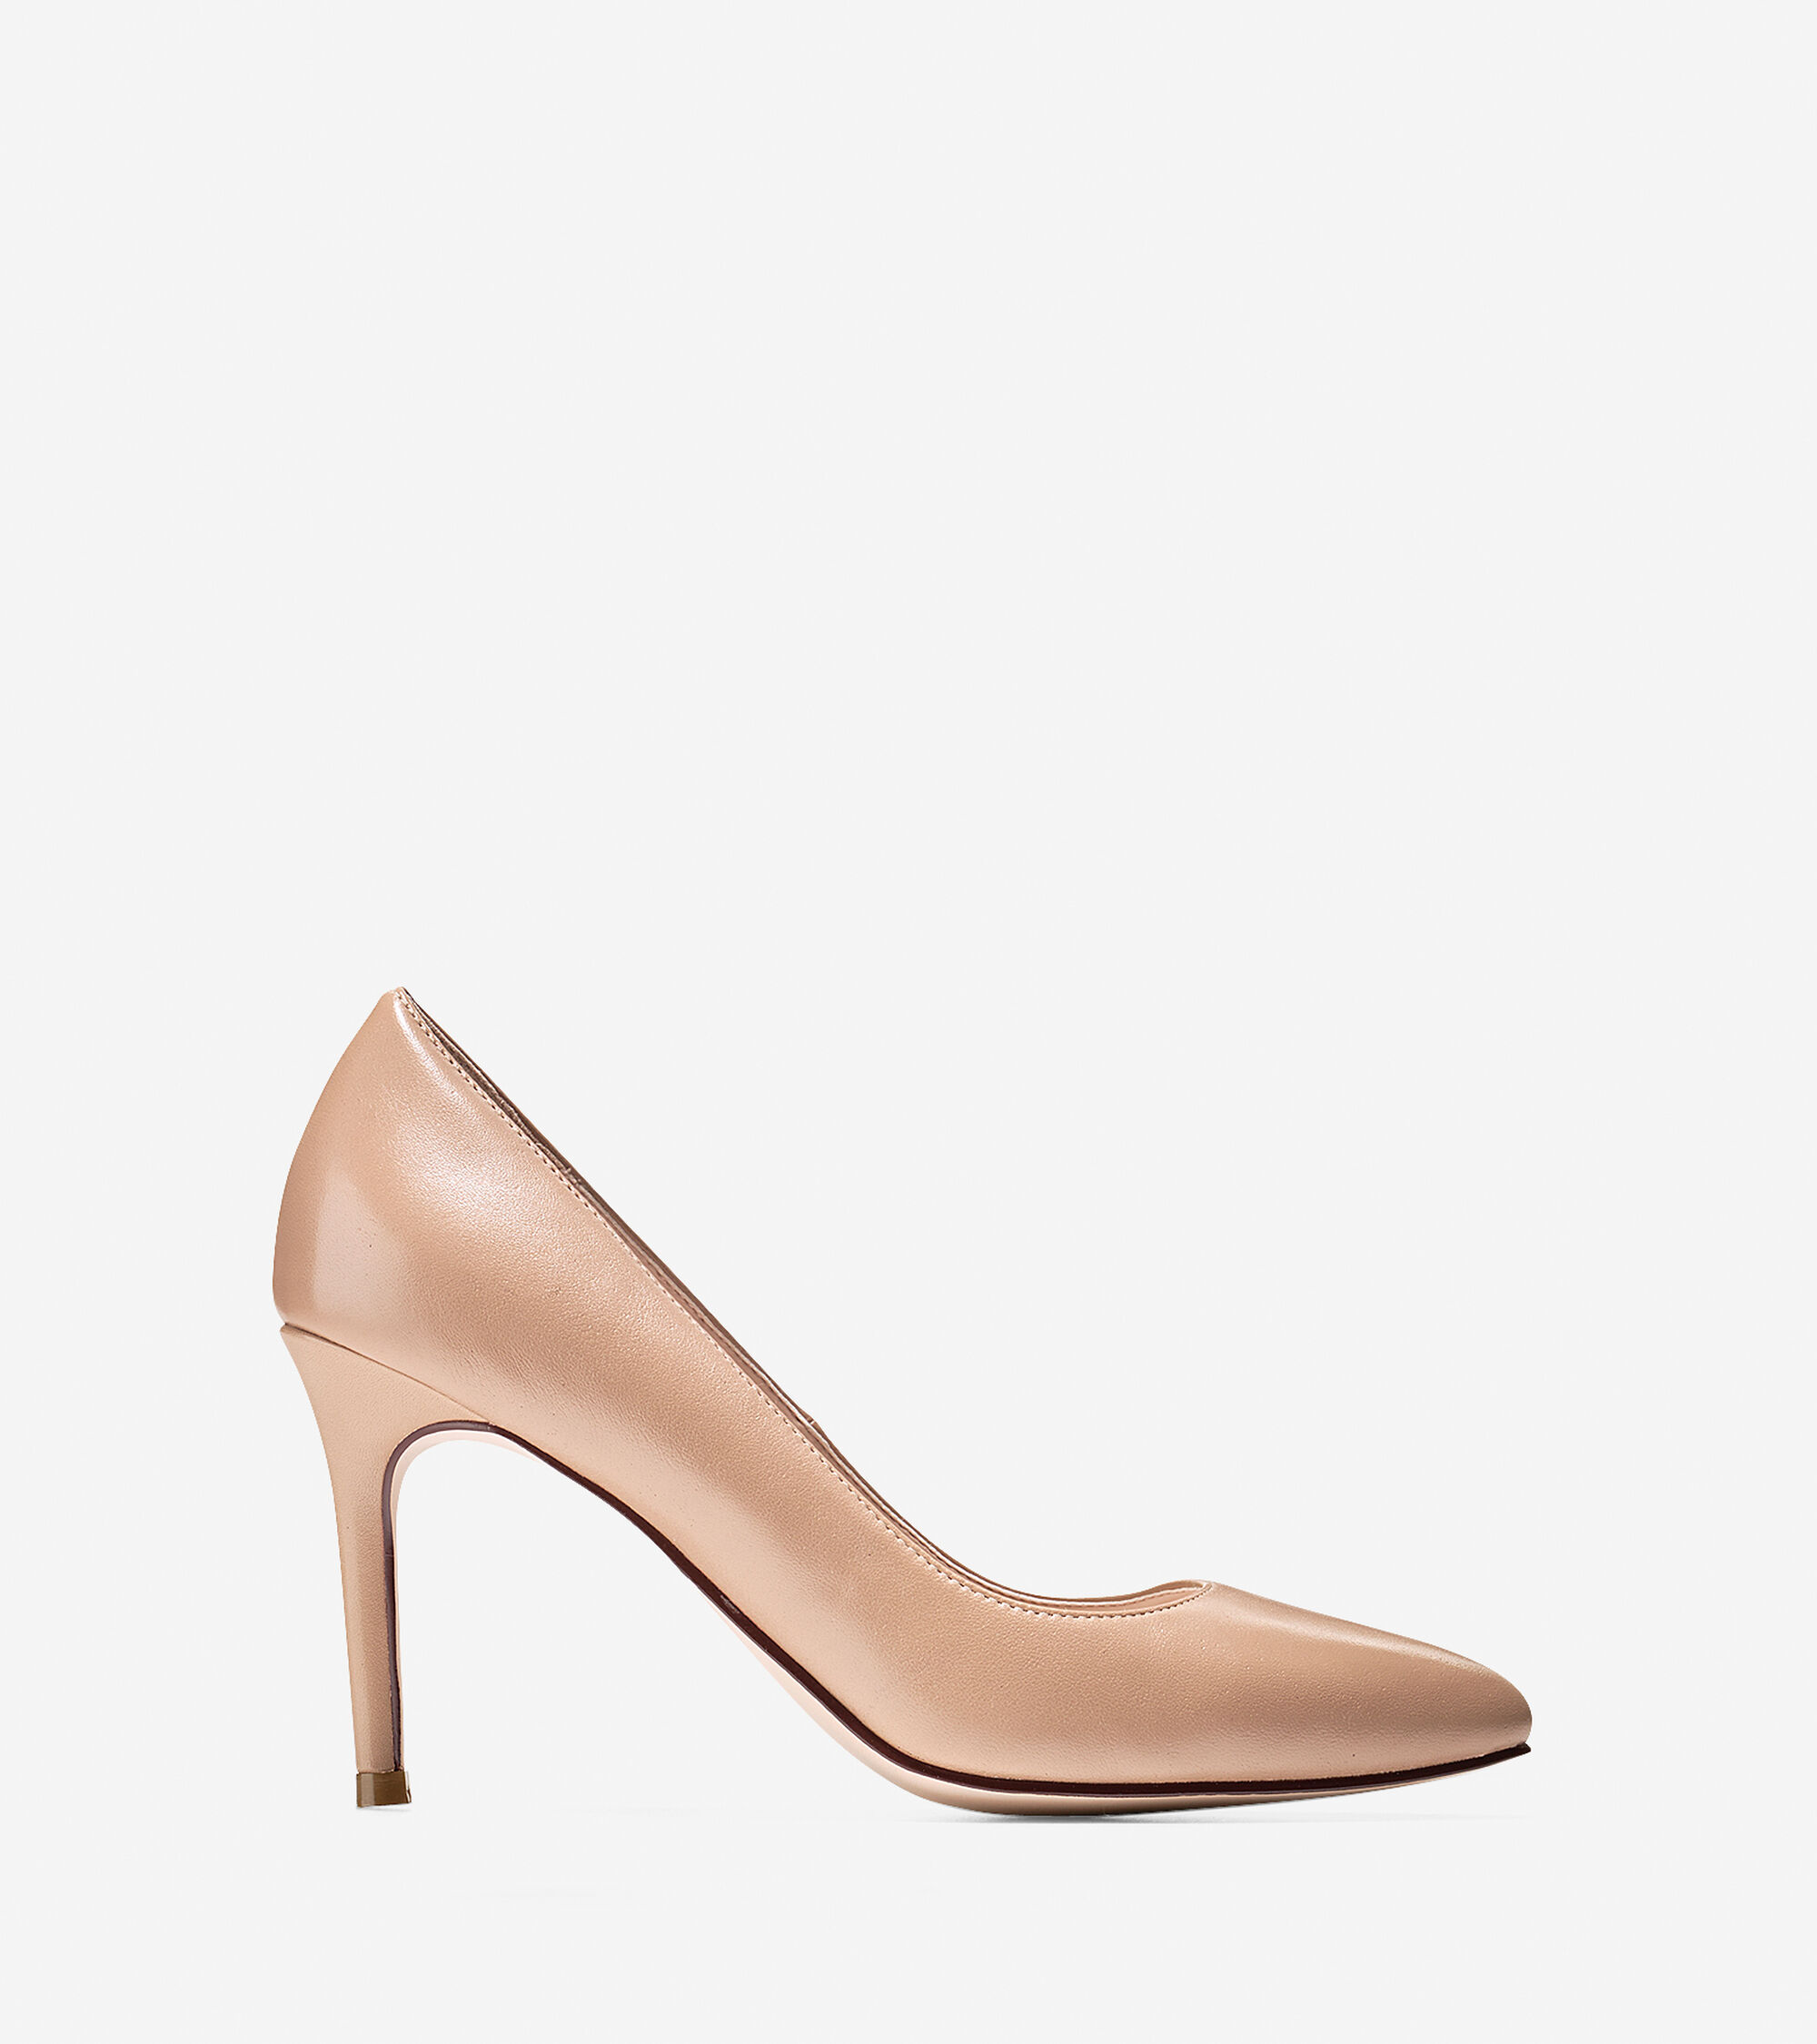 Shoes > Fair Haven Pump (85mm) - Almond Toe